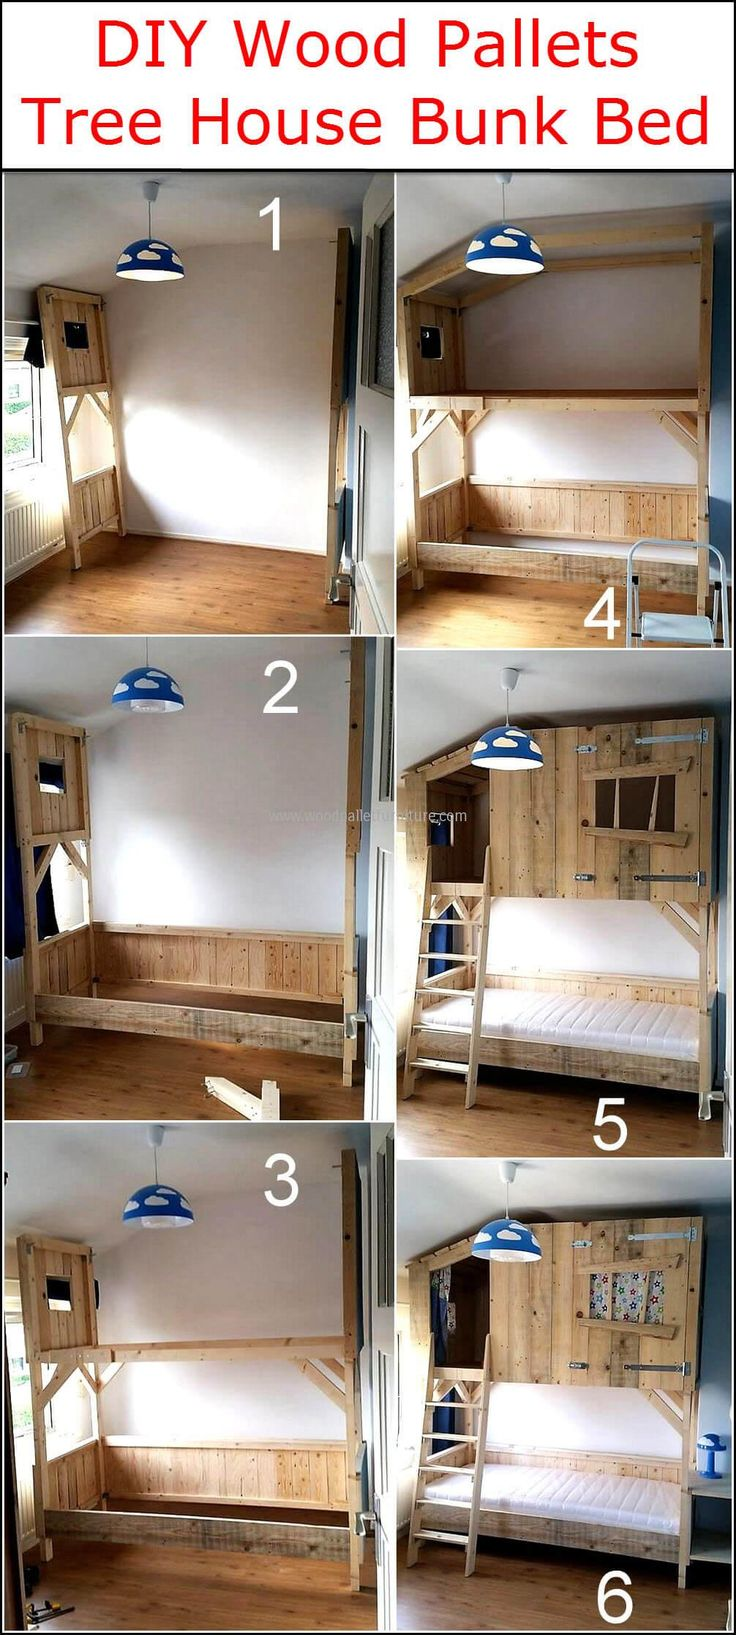 You can see the tree which this tree house castle clings to through - Diy Wood Pallets Tree House Bunk Bed